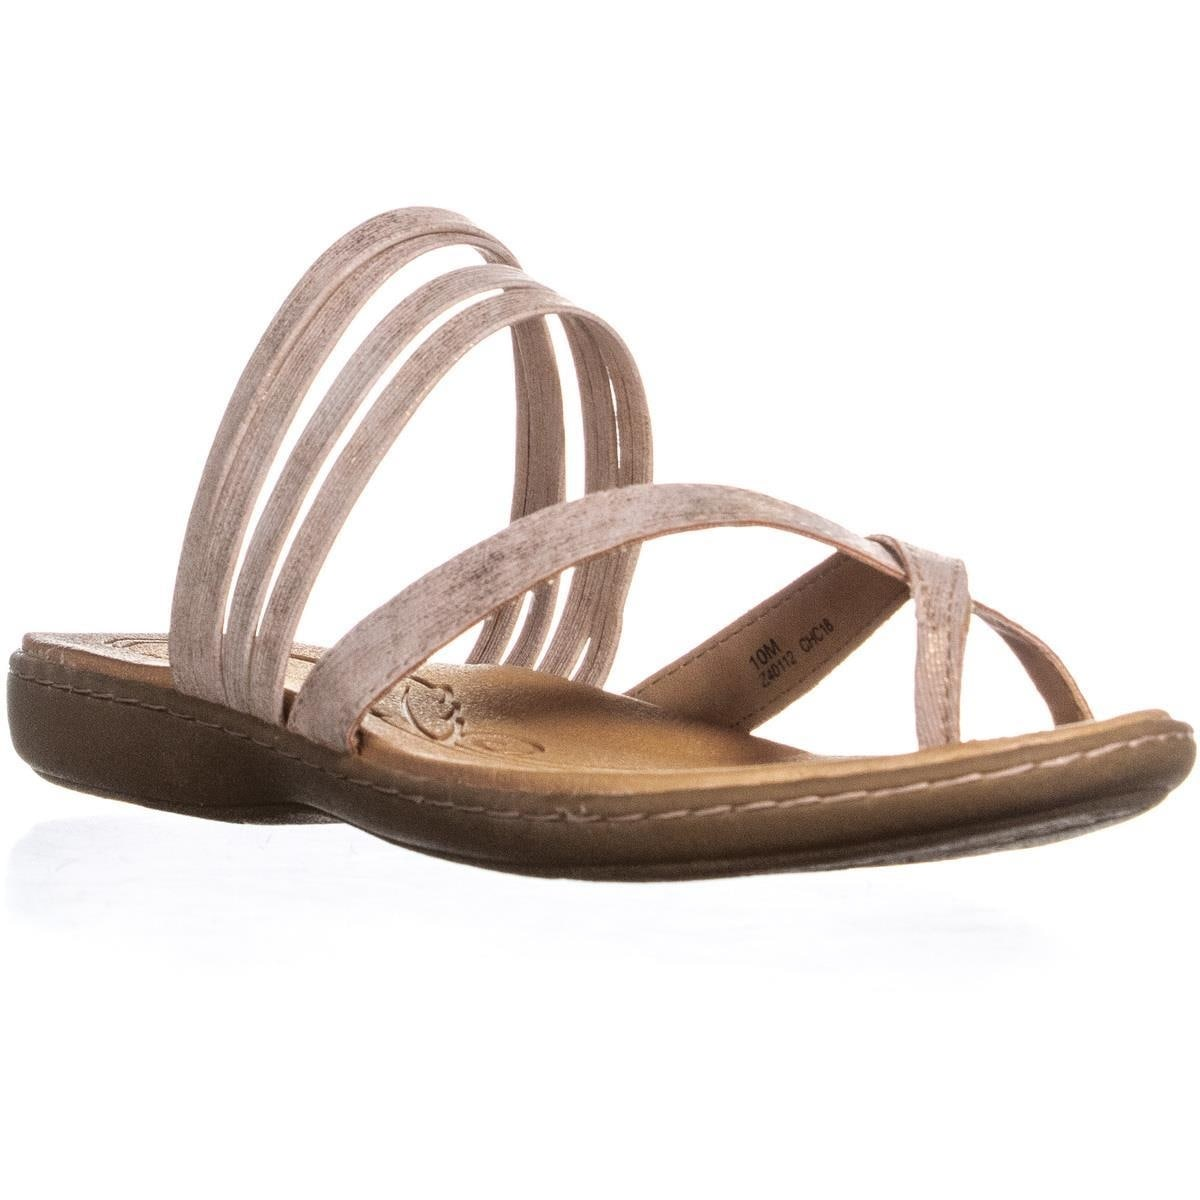 0d0a4ca8fca69 Shop Born Alisha Toe Strap Flat Slip On Sandals